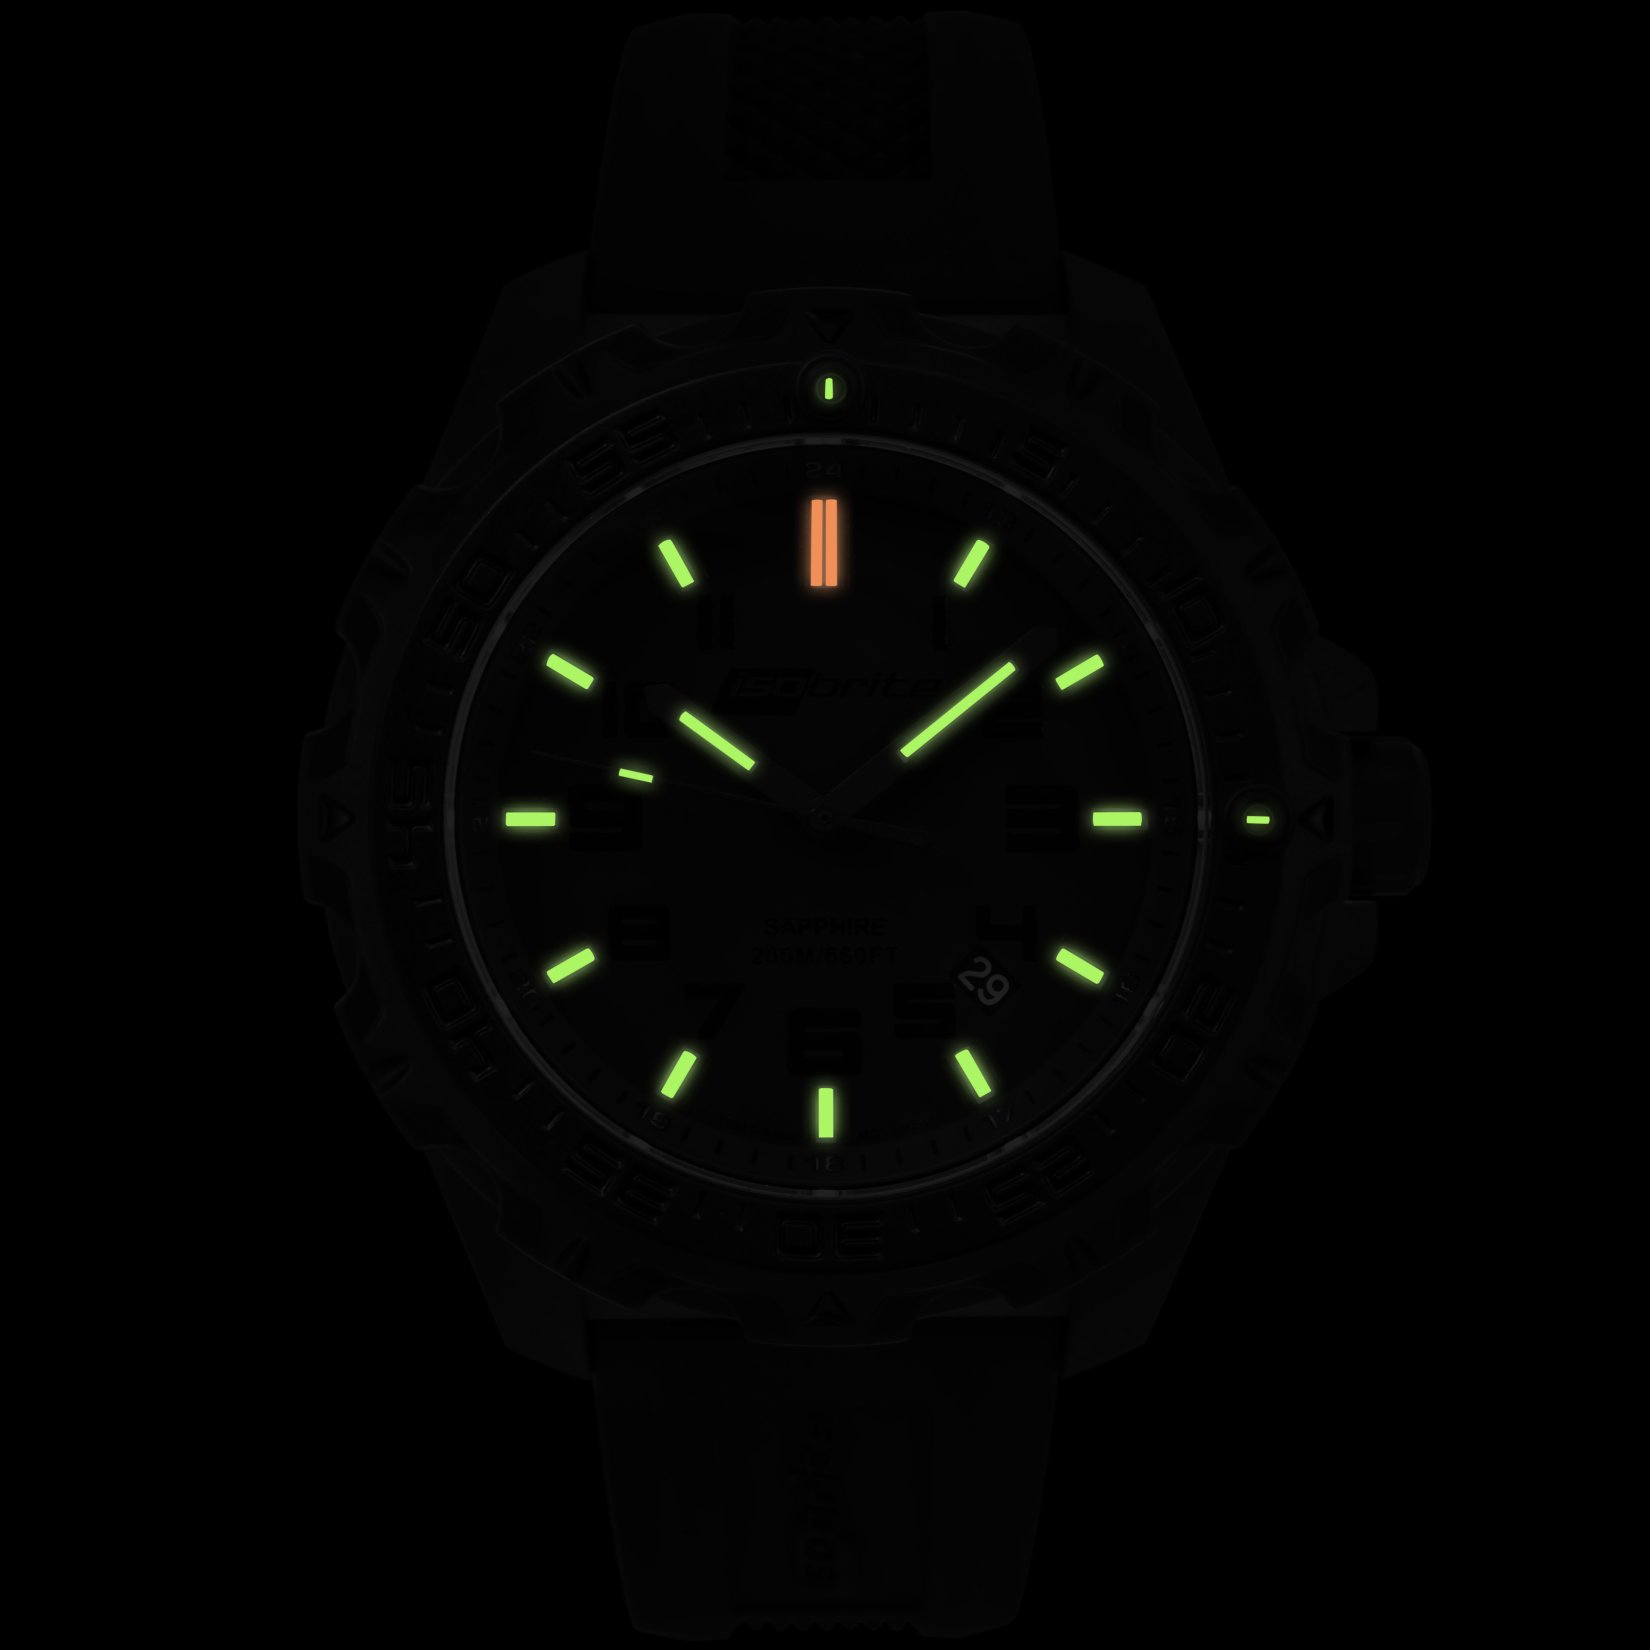 ArmourLite IsoBrite Eclipse T100 Tritium Illuminated Lightweight Polycarbon Watch 4 small All New Isobrite Eclipse T100 Tritium Illuminated Lightweight Polycarbon Tactical Watch Expands ArmourLites Commitment to Making the Brightest and Most Durable Watches